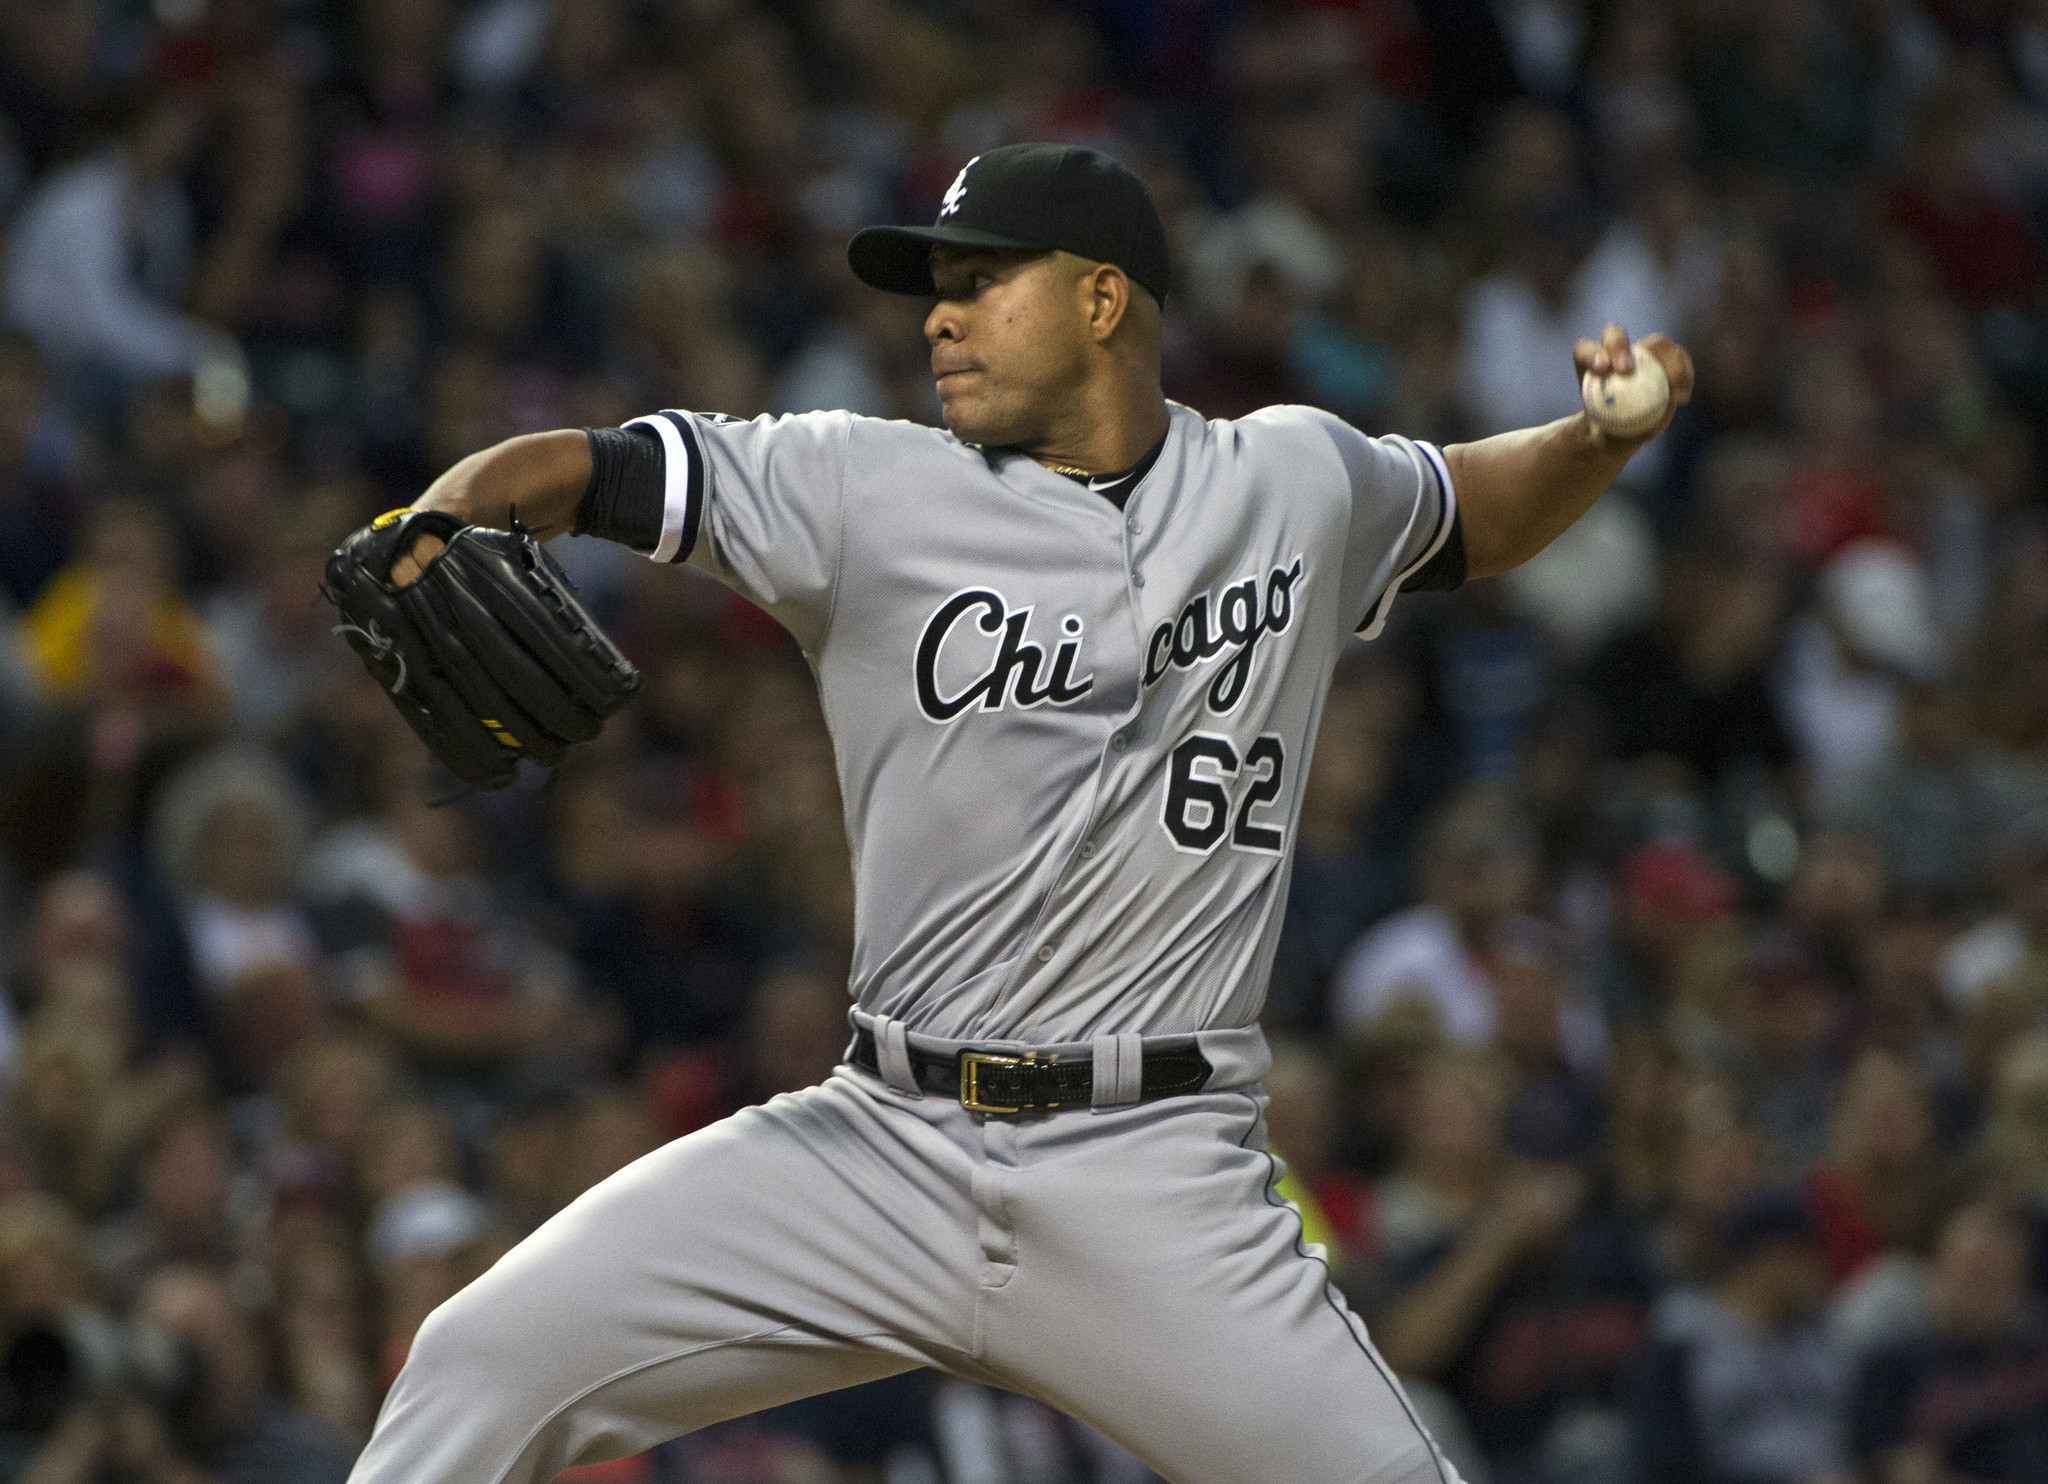 Ct-jose-quintana-superb-white-sox-indians-spt-0925-20160924